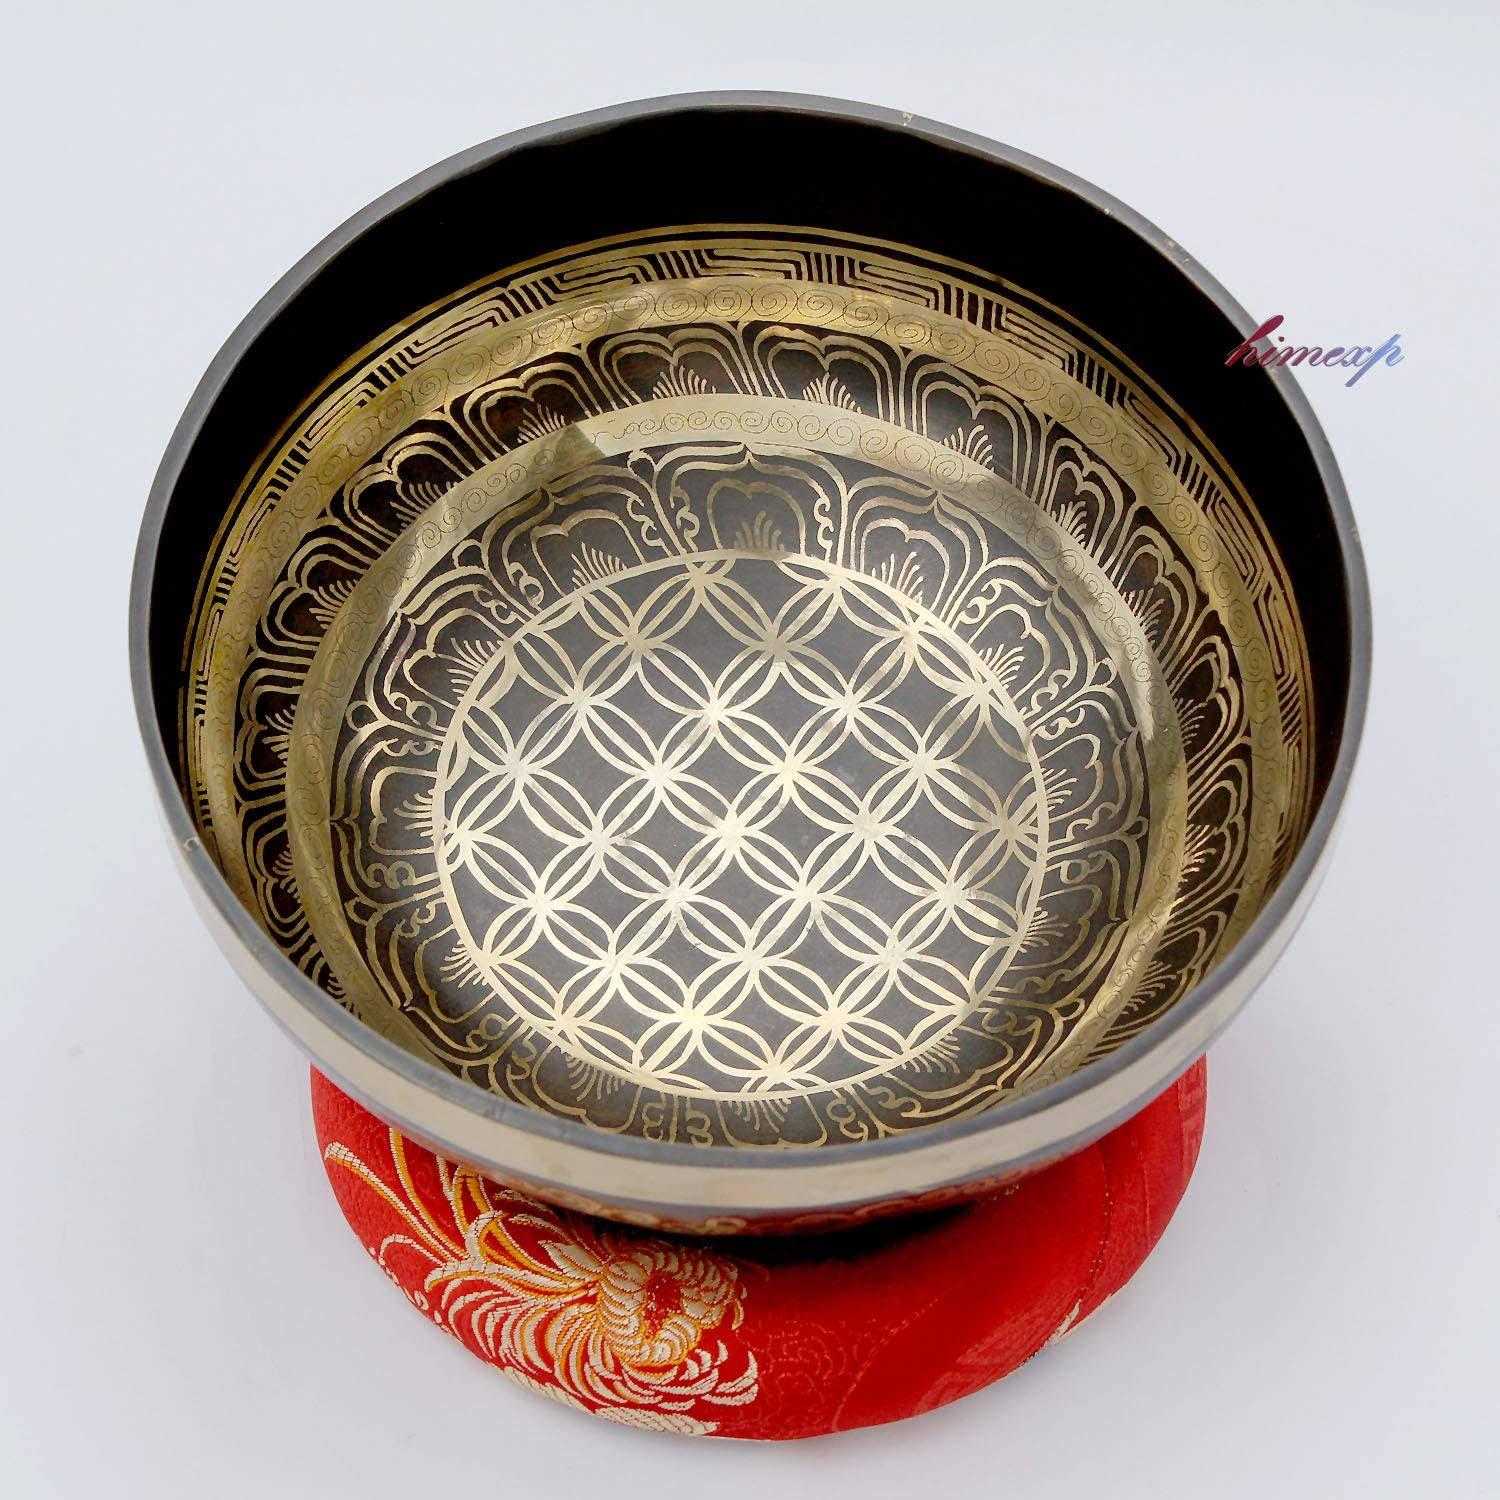 21 cm, Flower of Life and Conch Carved Healing and Therapy Singing Bowl, Singing Bowl for Yoga and Meditation Practice.